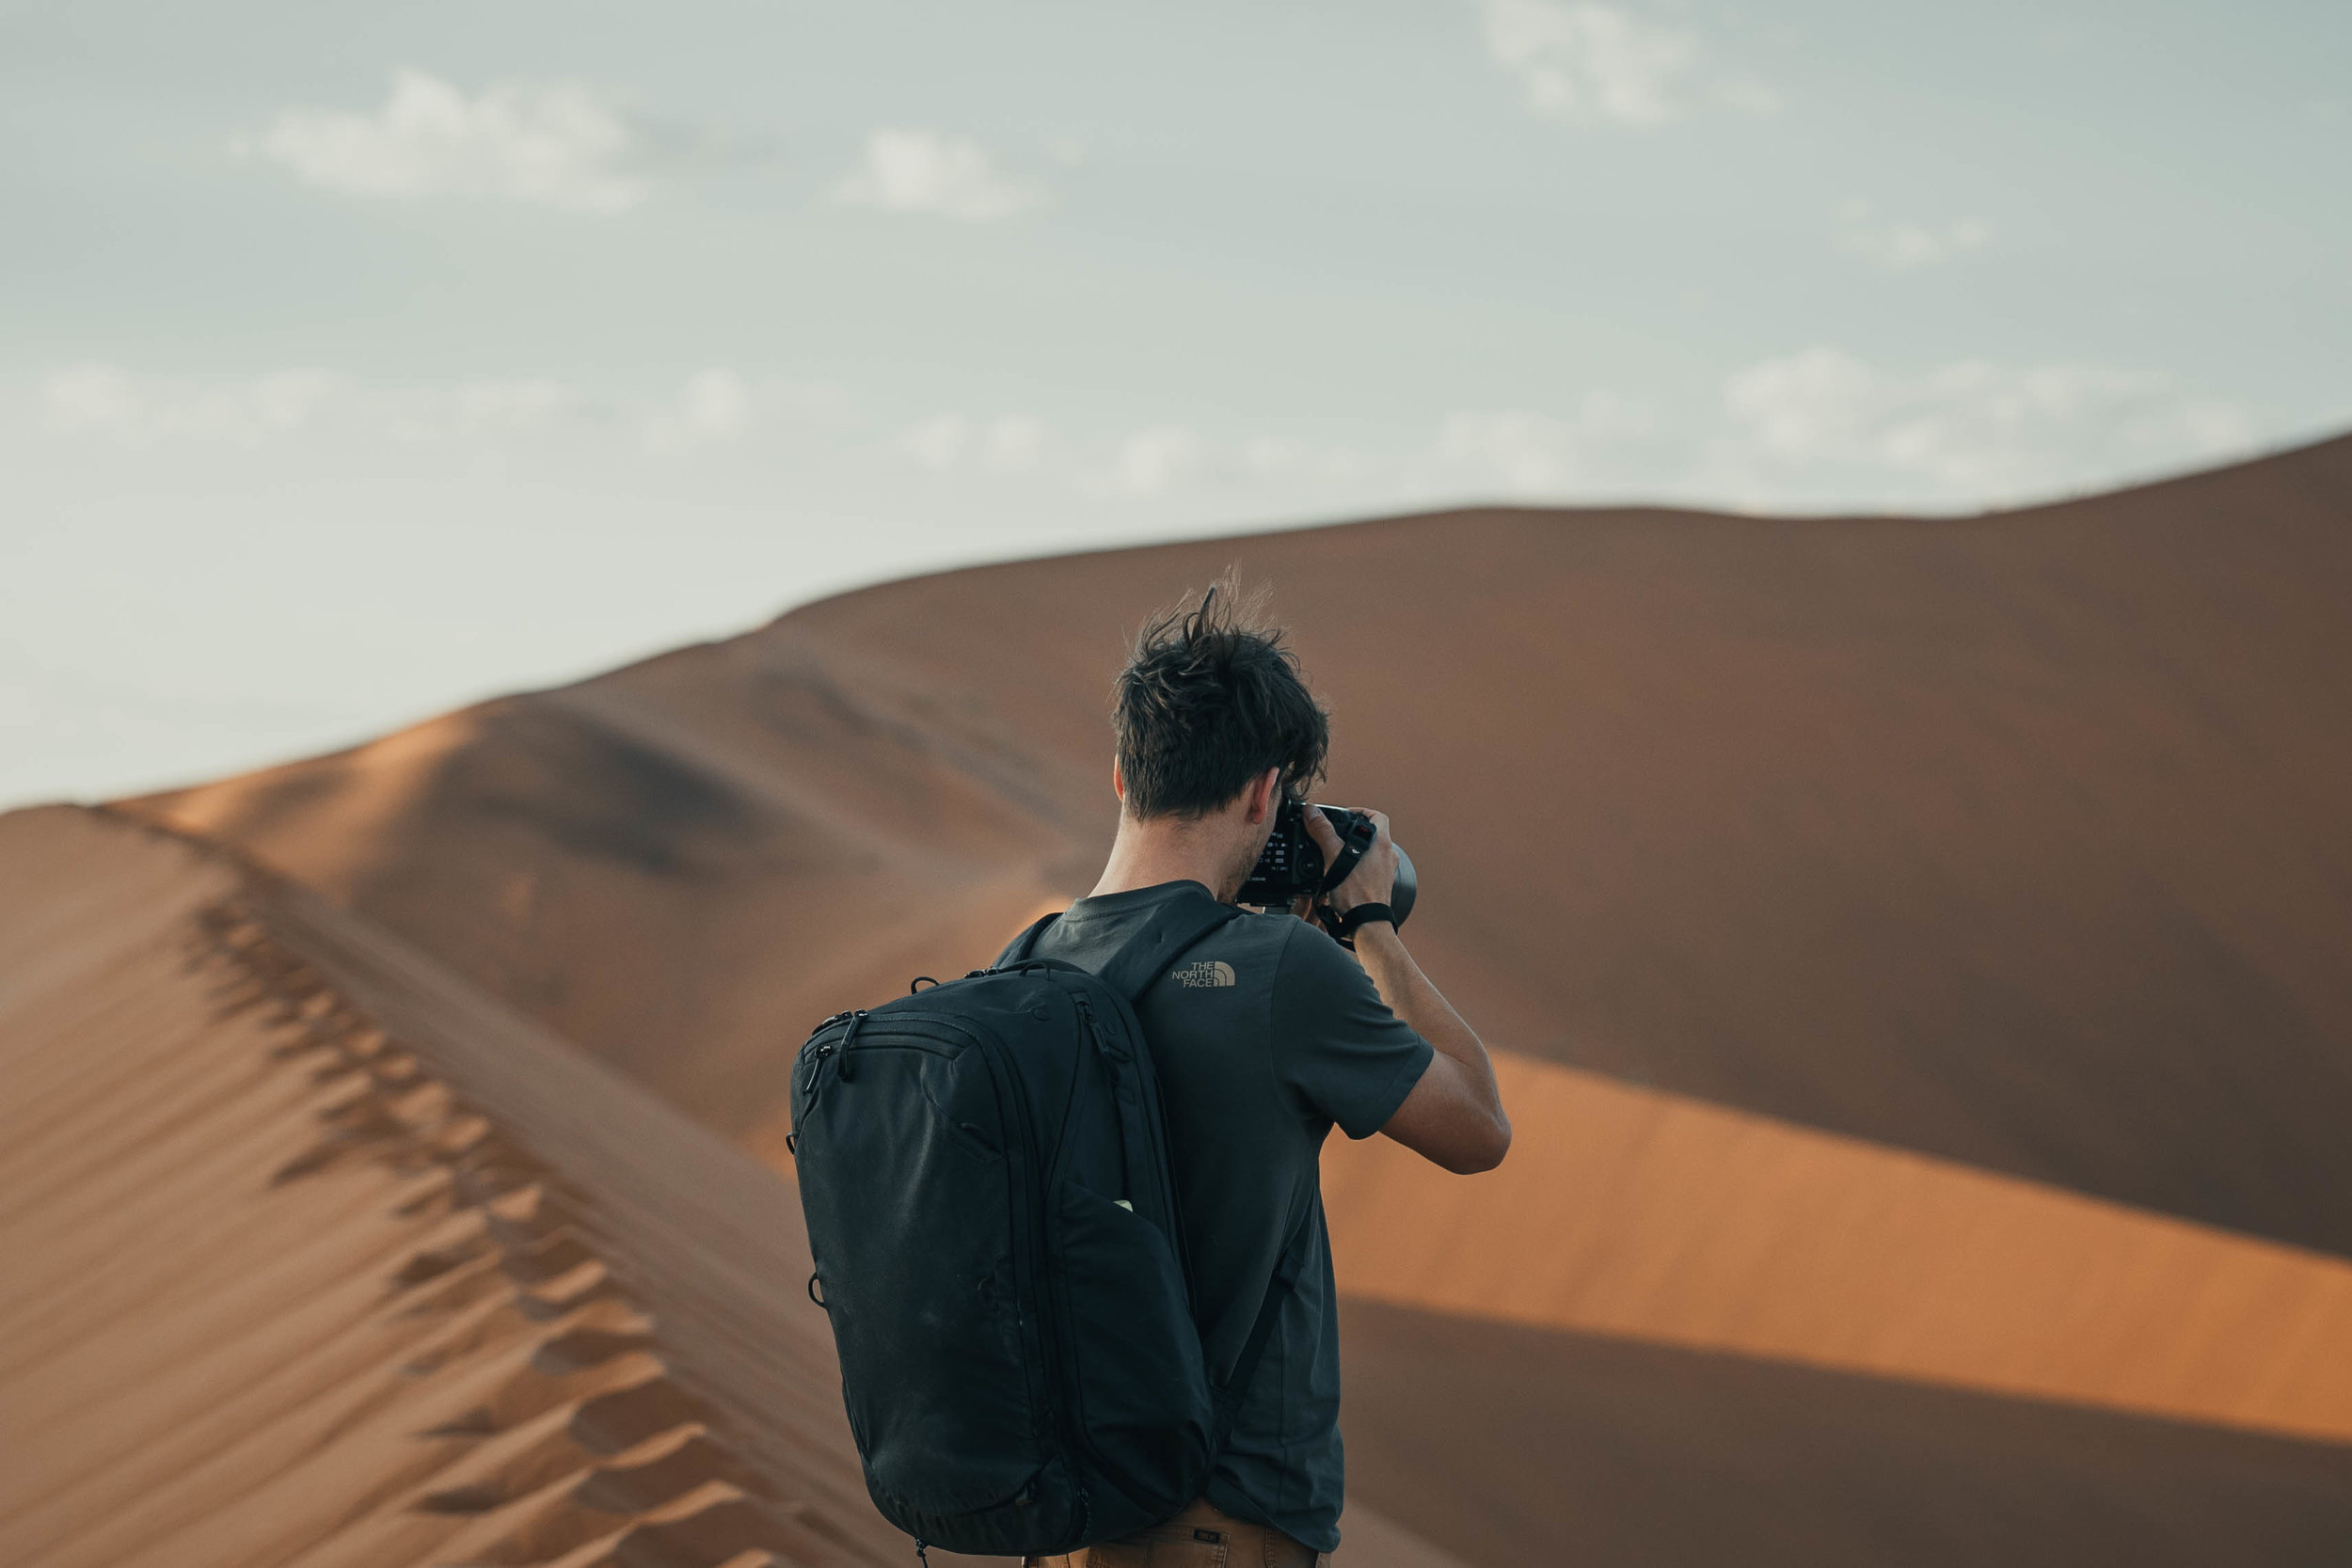 Capturing the beautiful Namibian desert with my trusty backpack